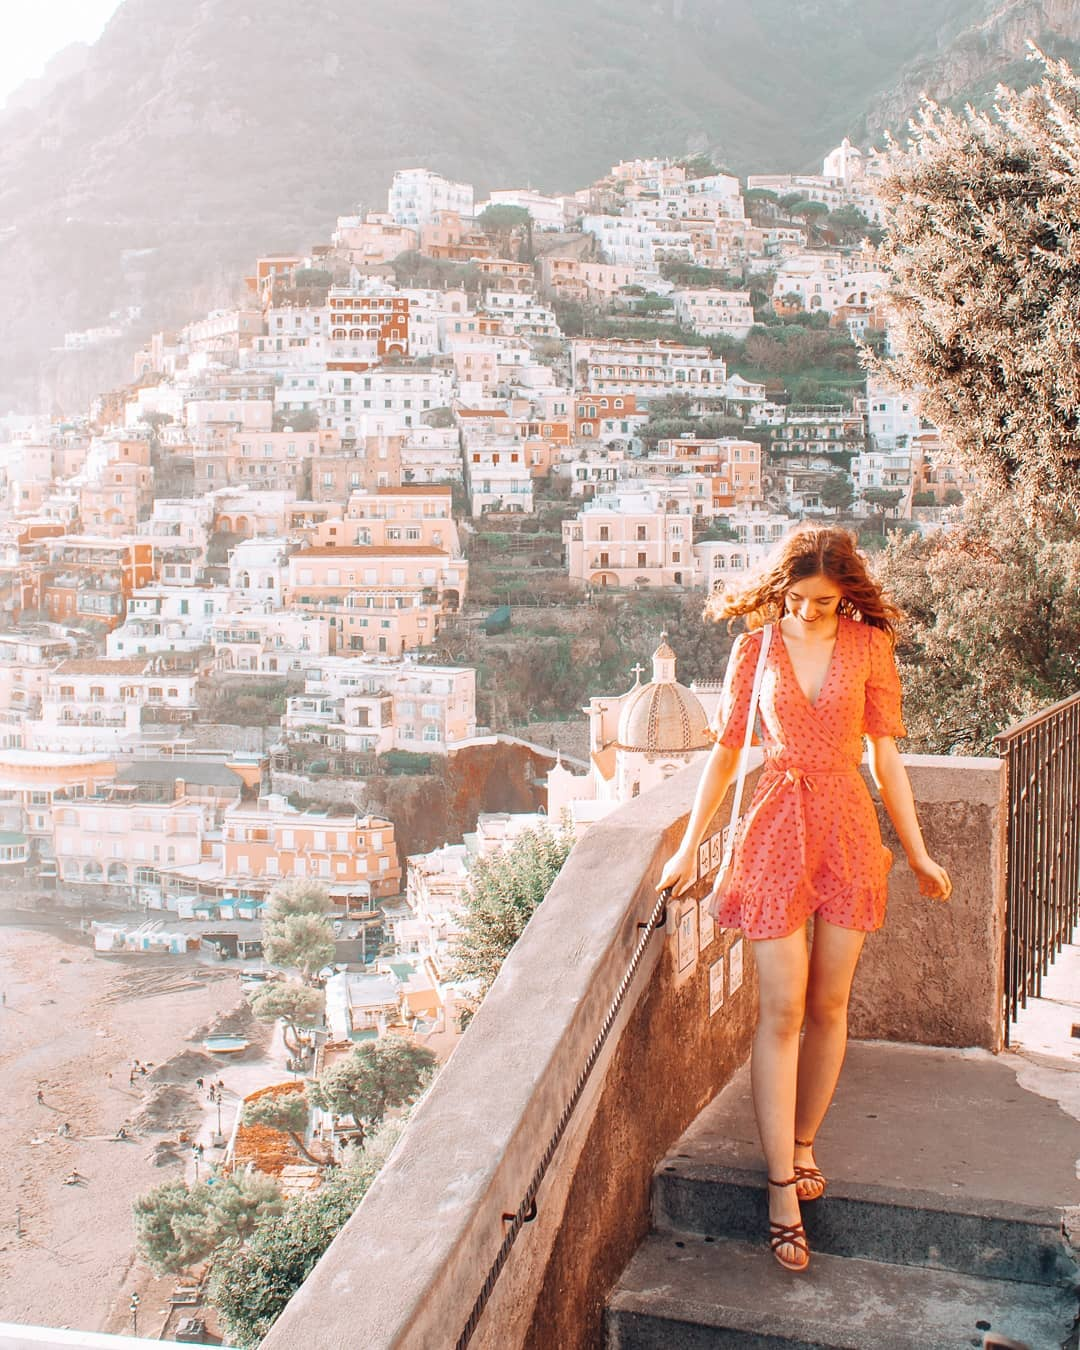 Stairs and houses in Positano